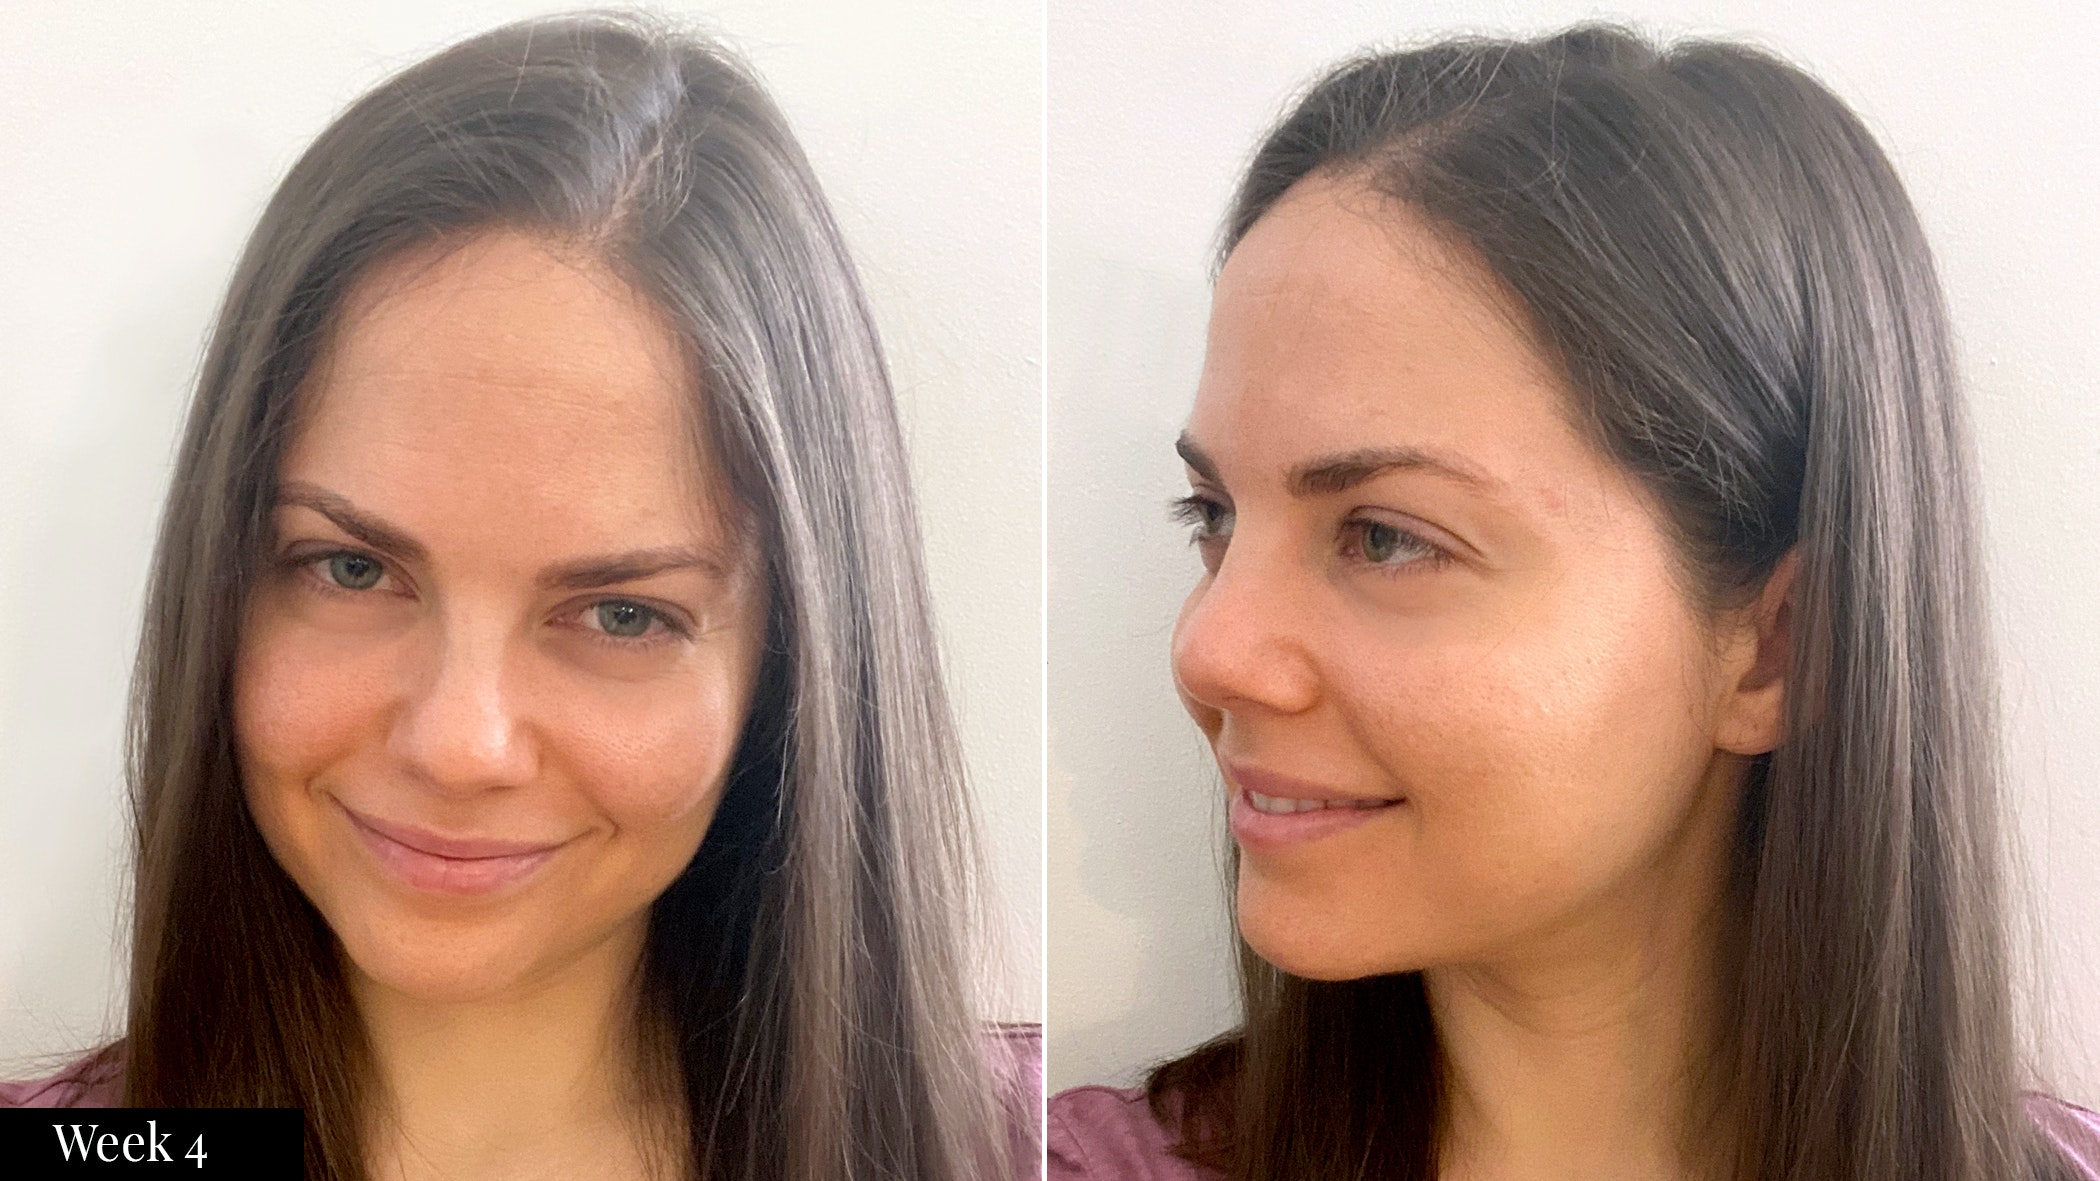 SkinMedica skincare results  after four weeks | Spotlyte